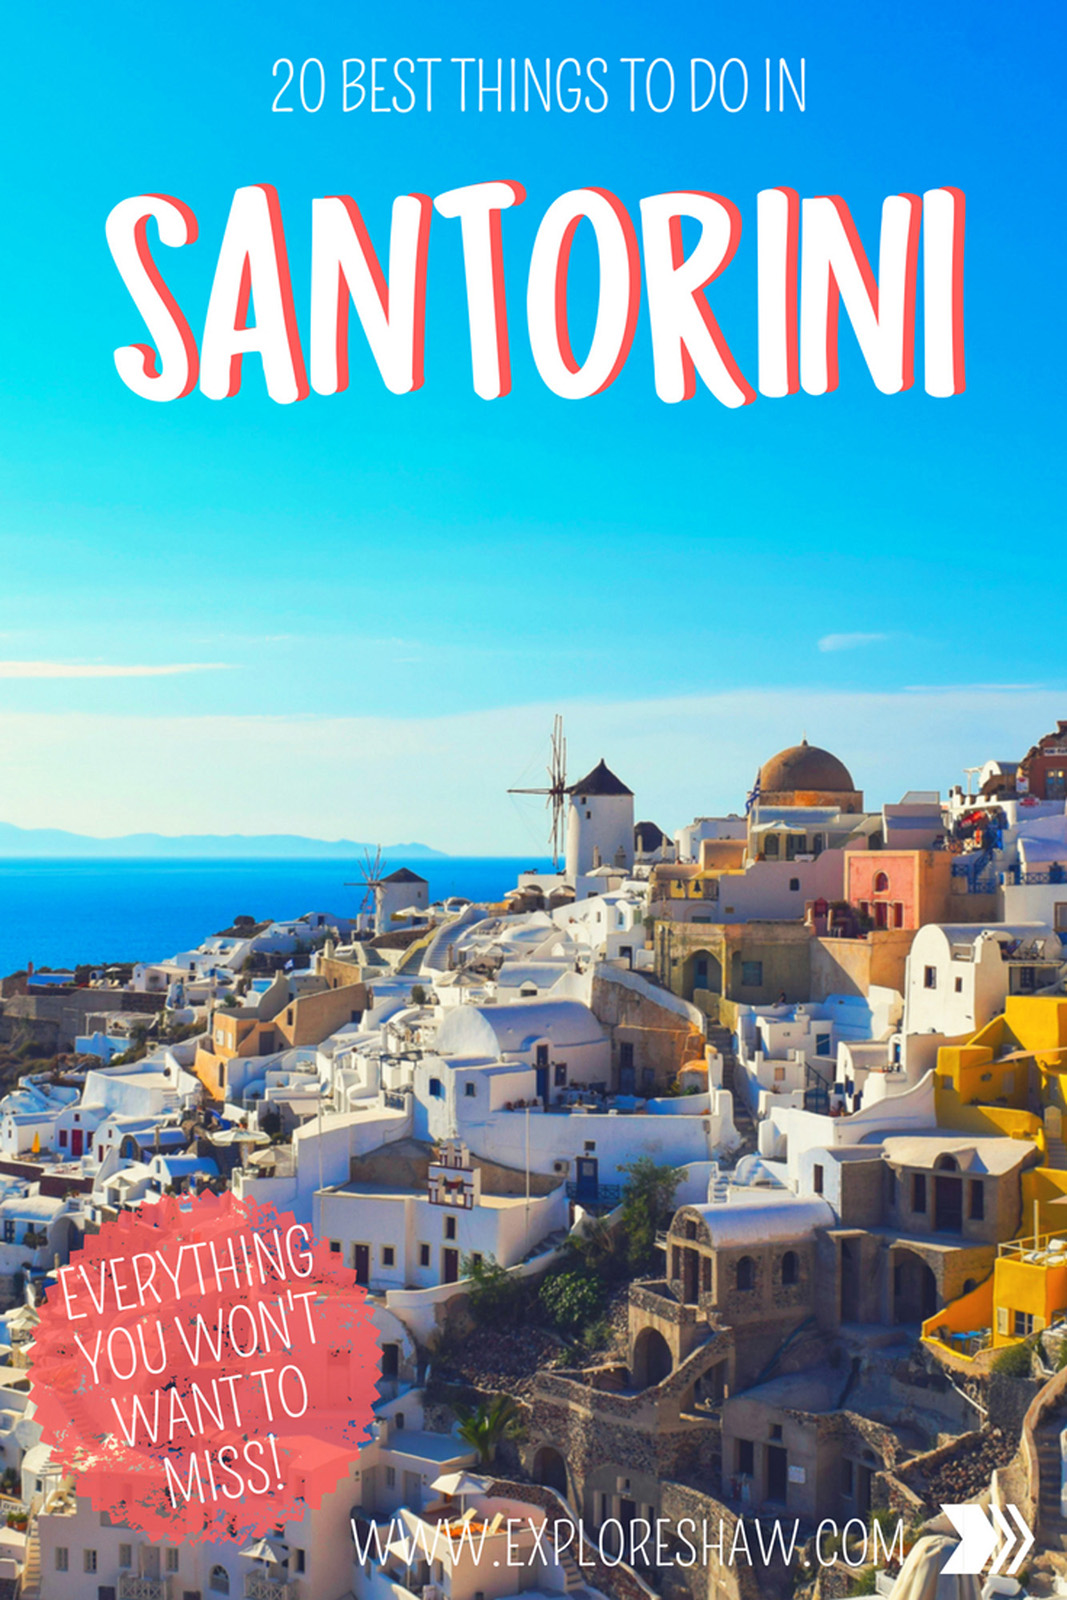 Santorini offers an endless list of things to do, see and experience for such a tiny island. From beaches to hot springs, volcanoes to steep donkey rides there is something for everyone. #Greece